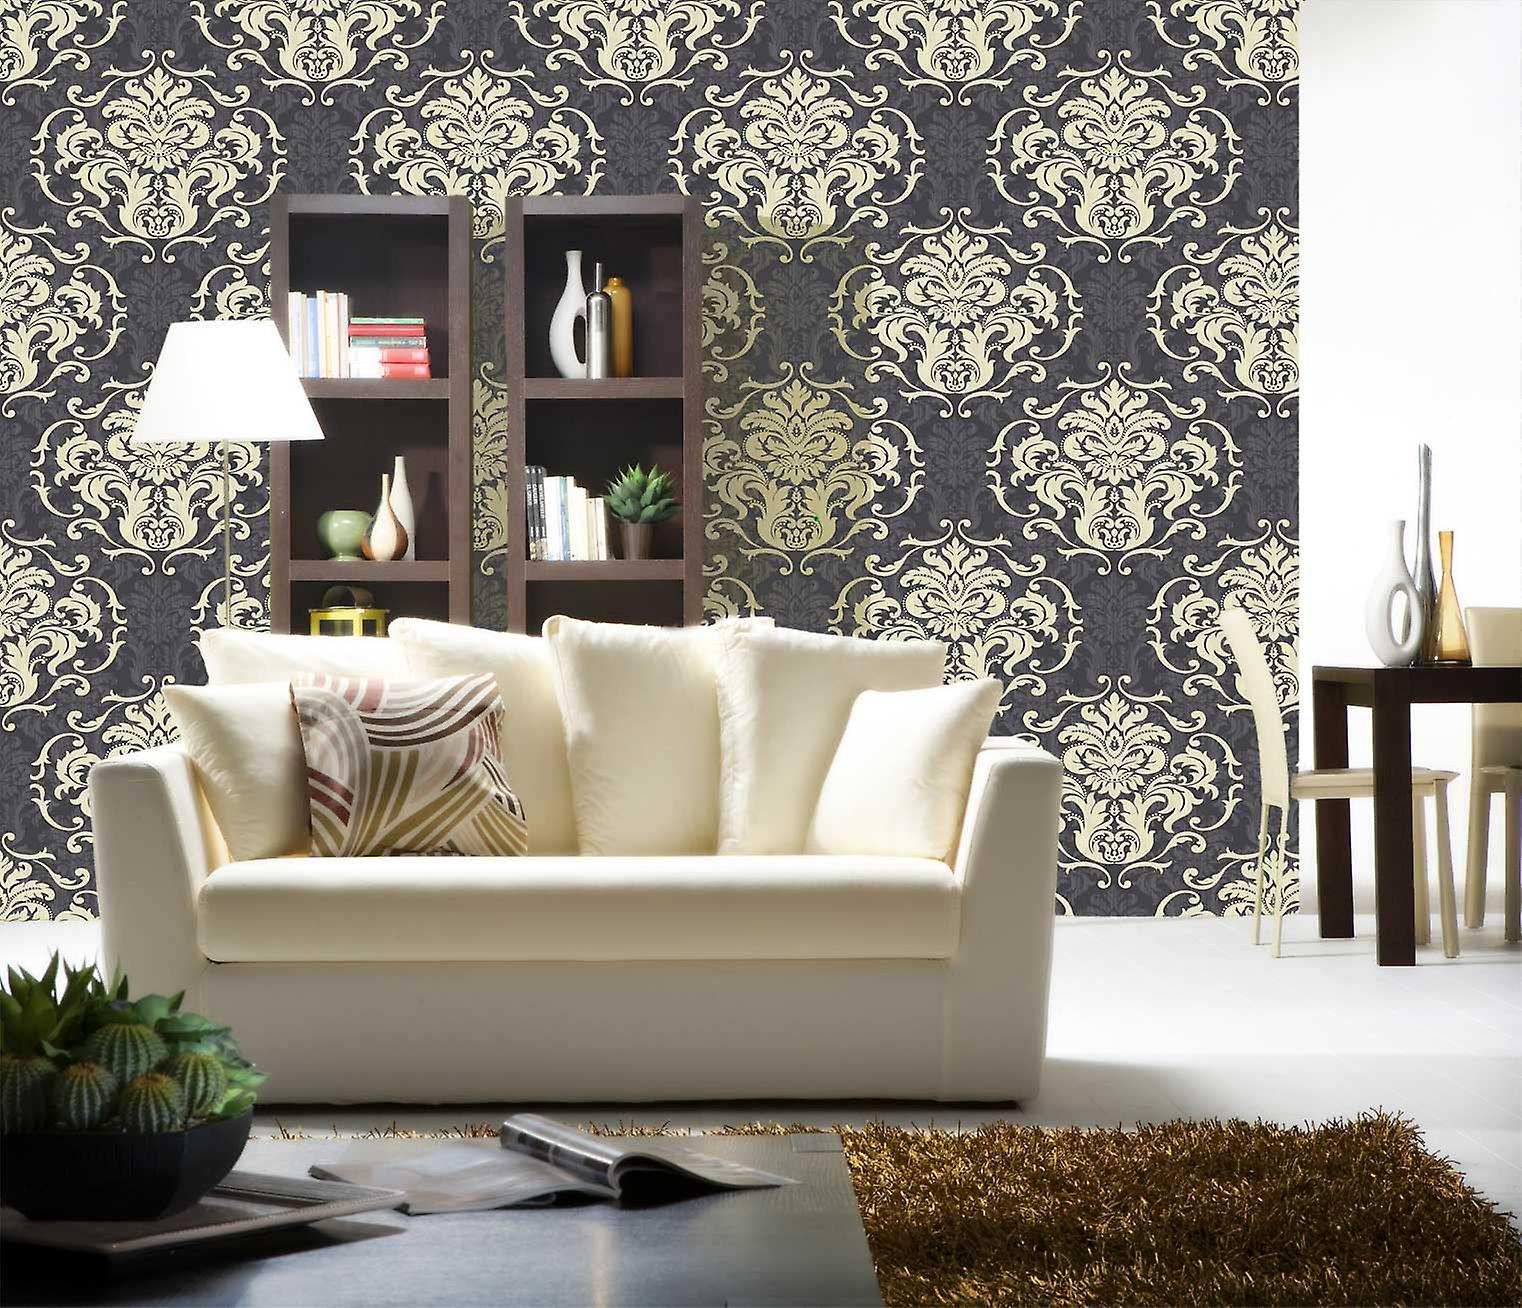 Damask Wallpaper Chelsea Design From Debona in Charcoal and Cream